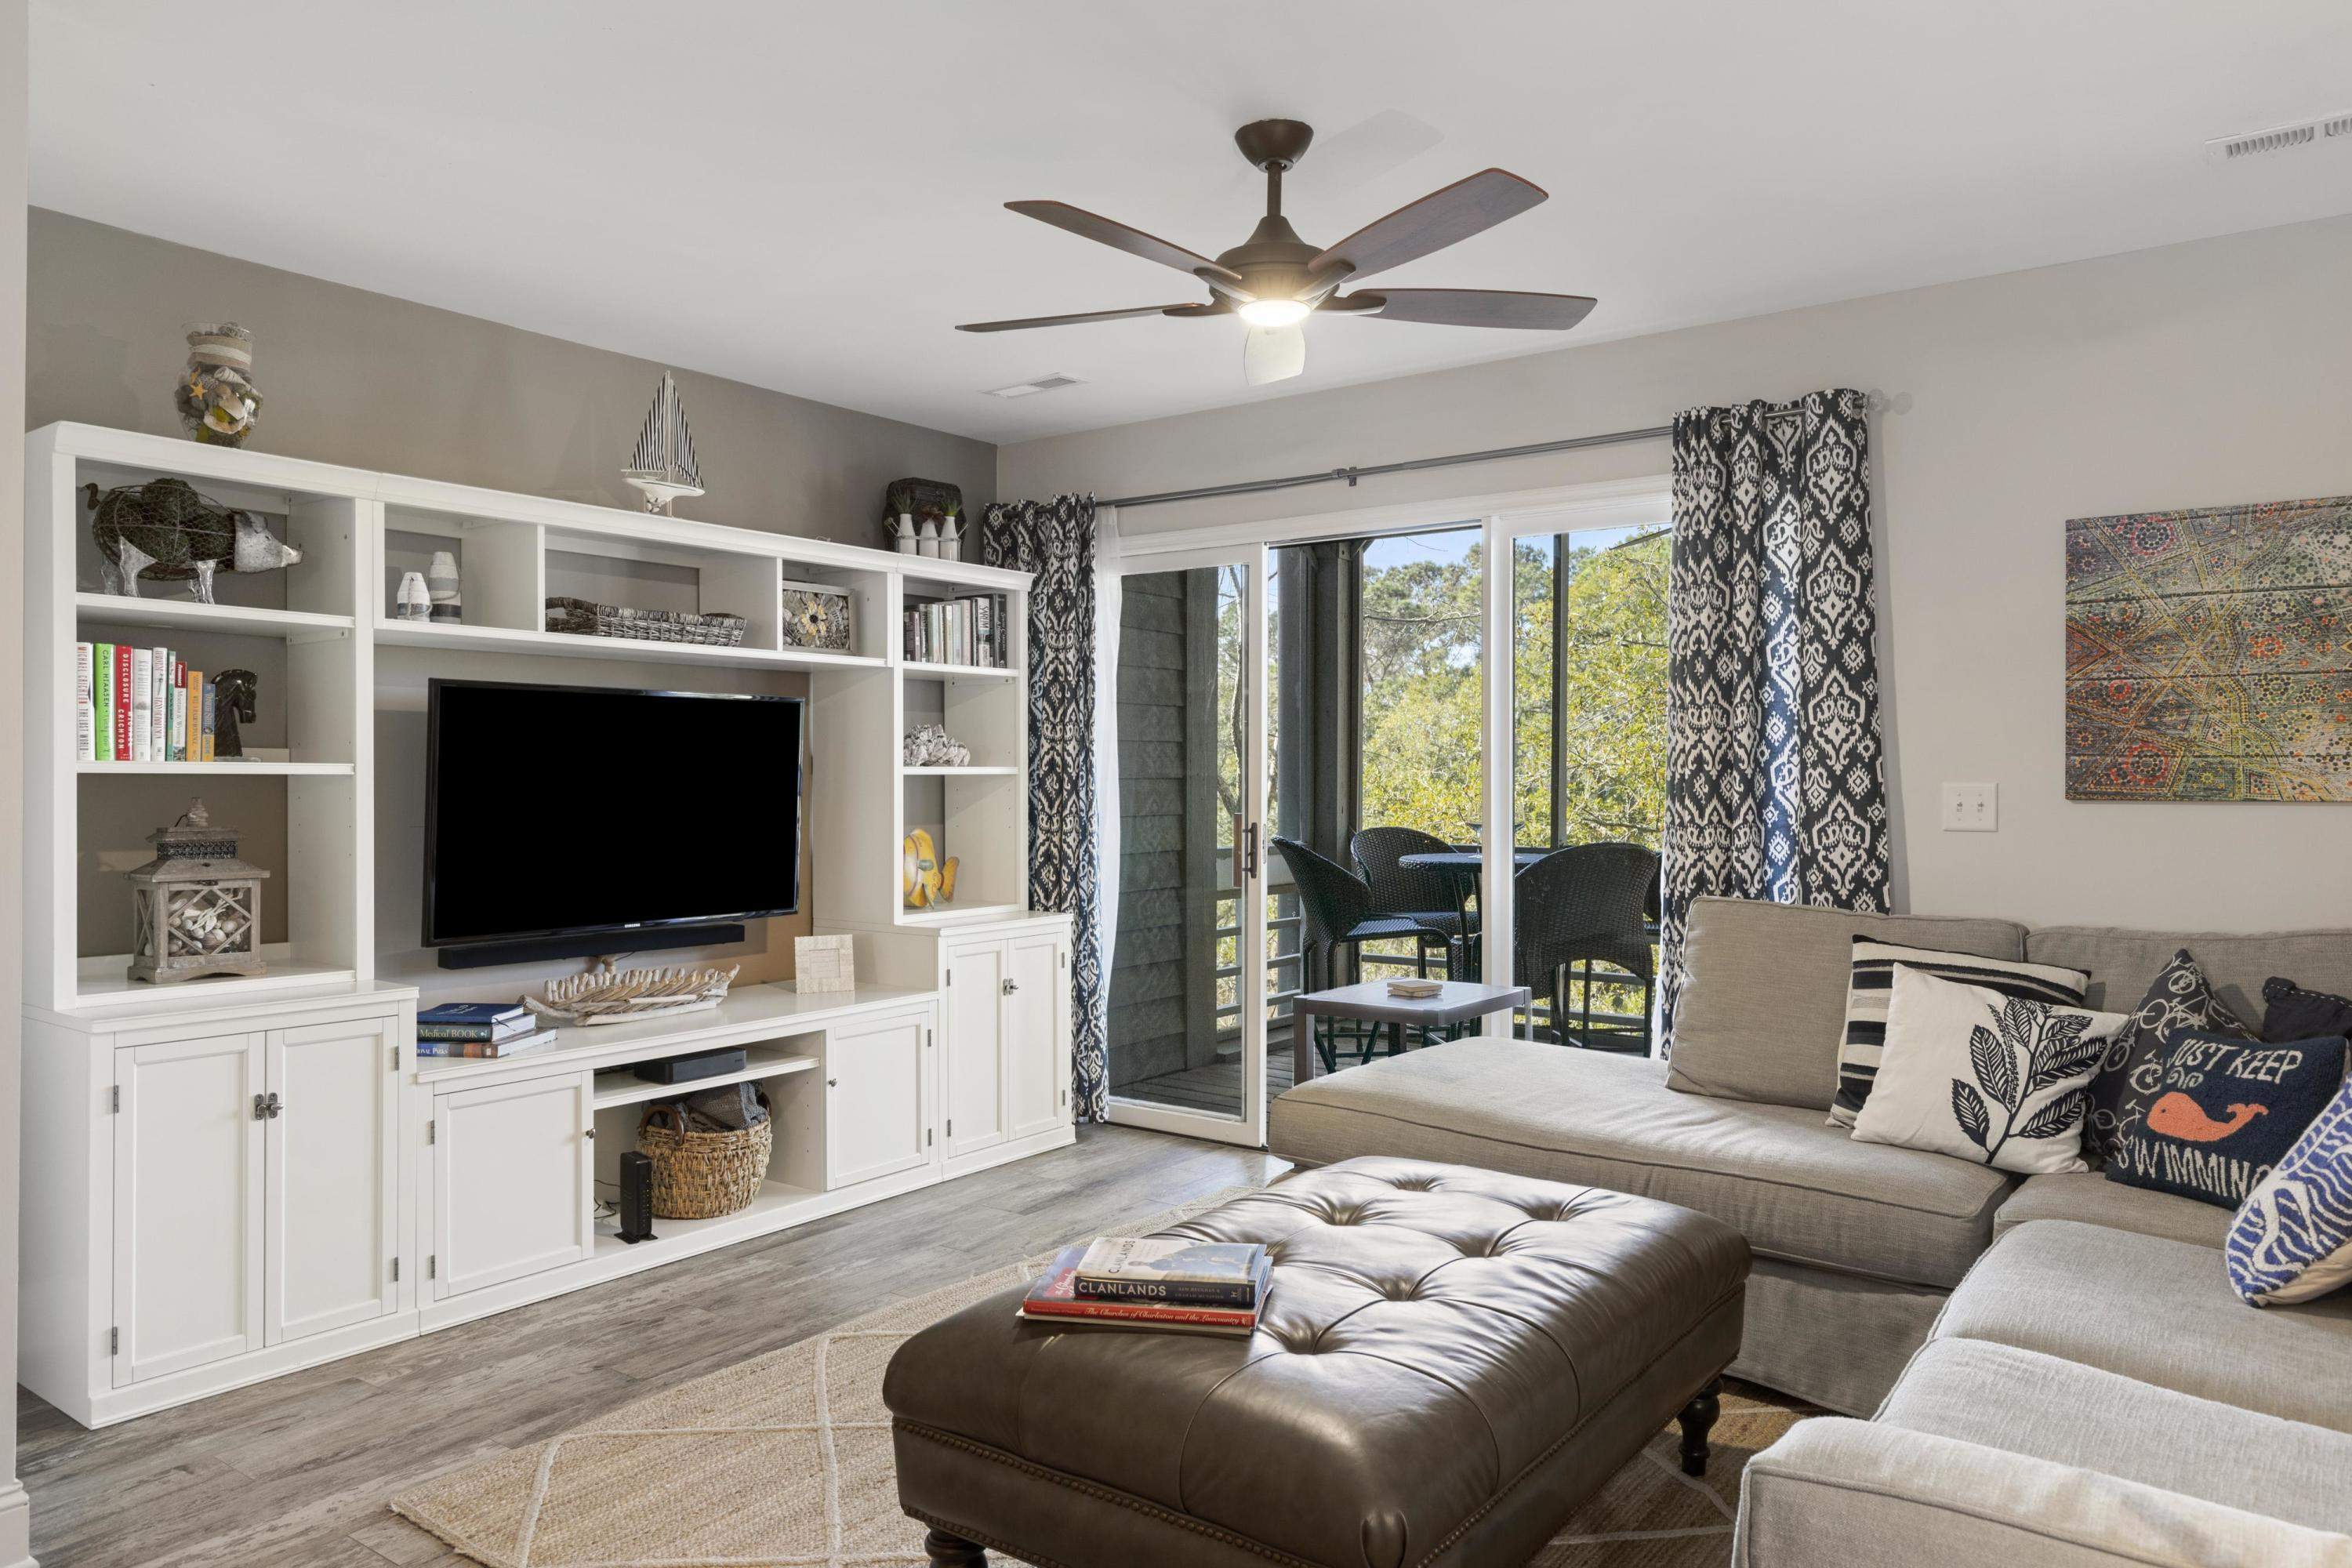 Seabrook Island Condos For Sale - 2416 Racquet Club, Seabrook Island, SC - 8